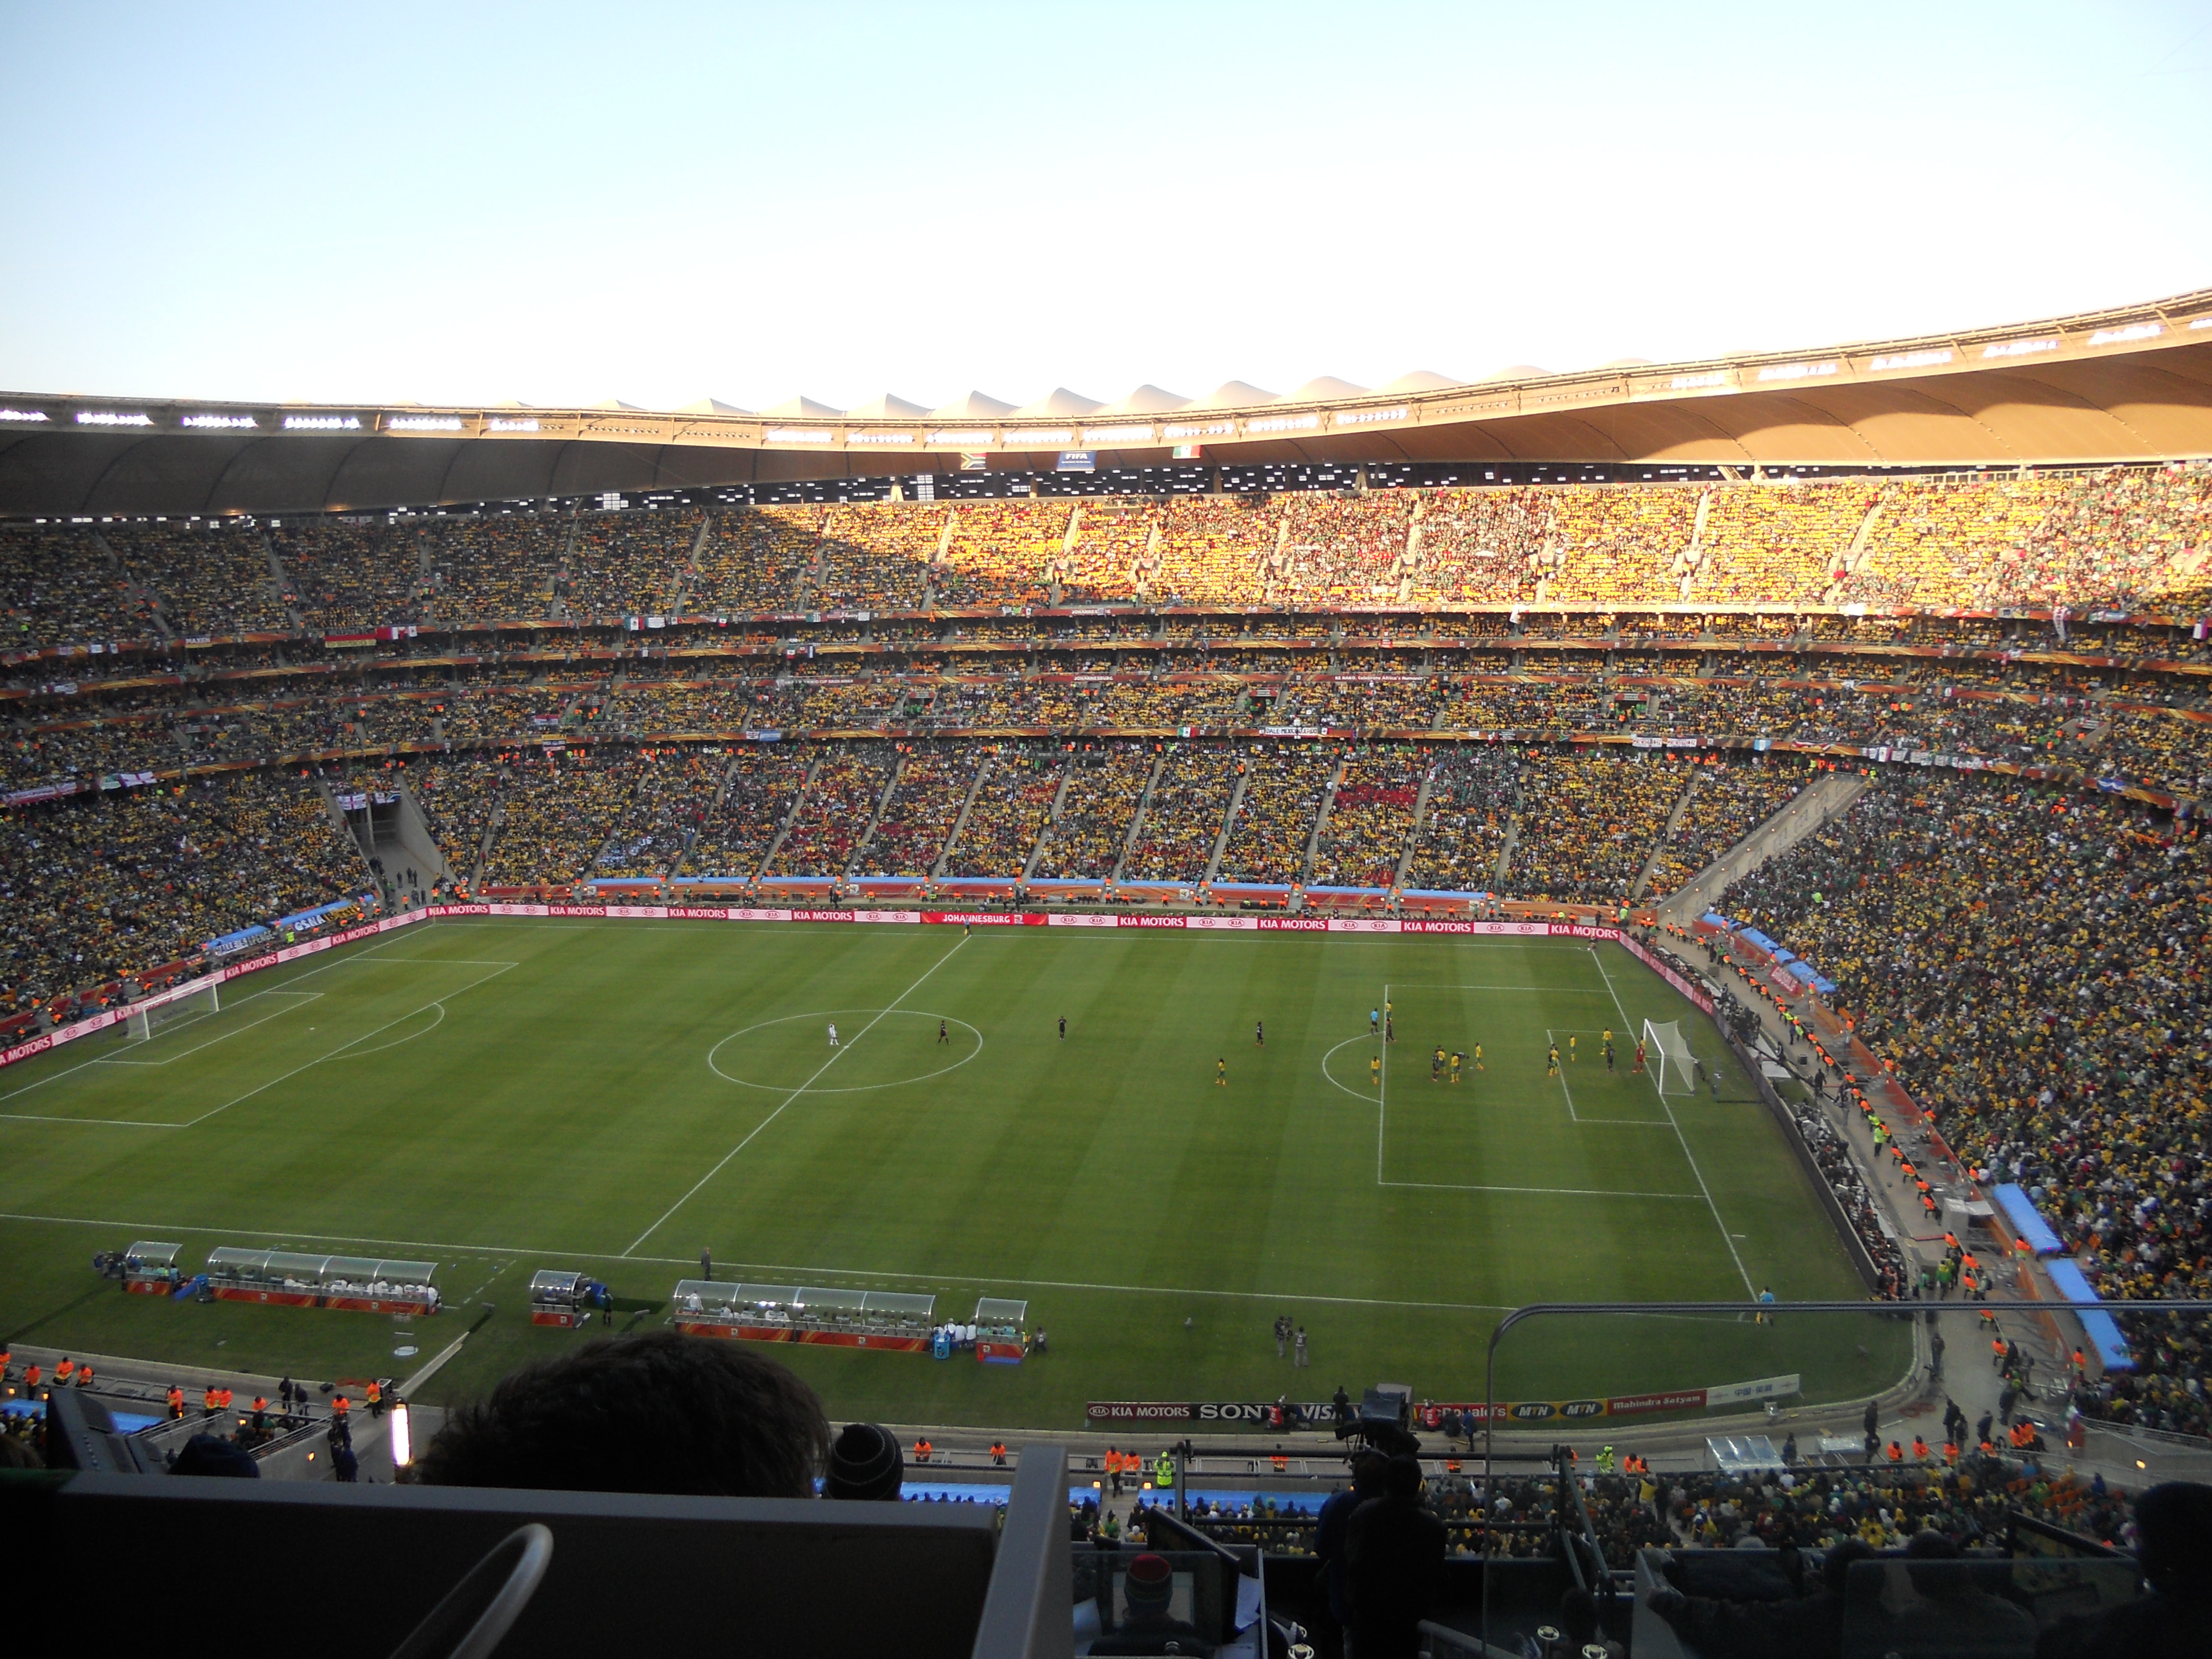 The largest stadiums in the world